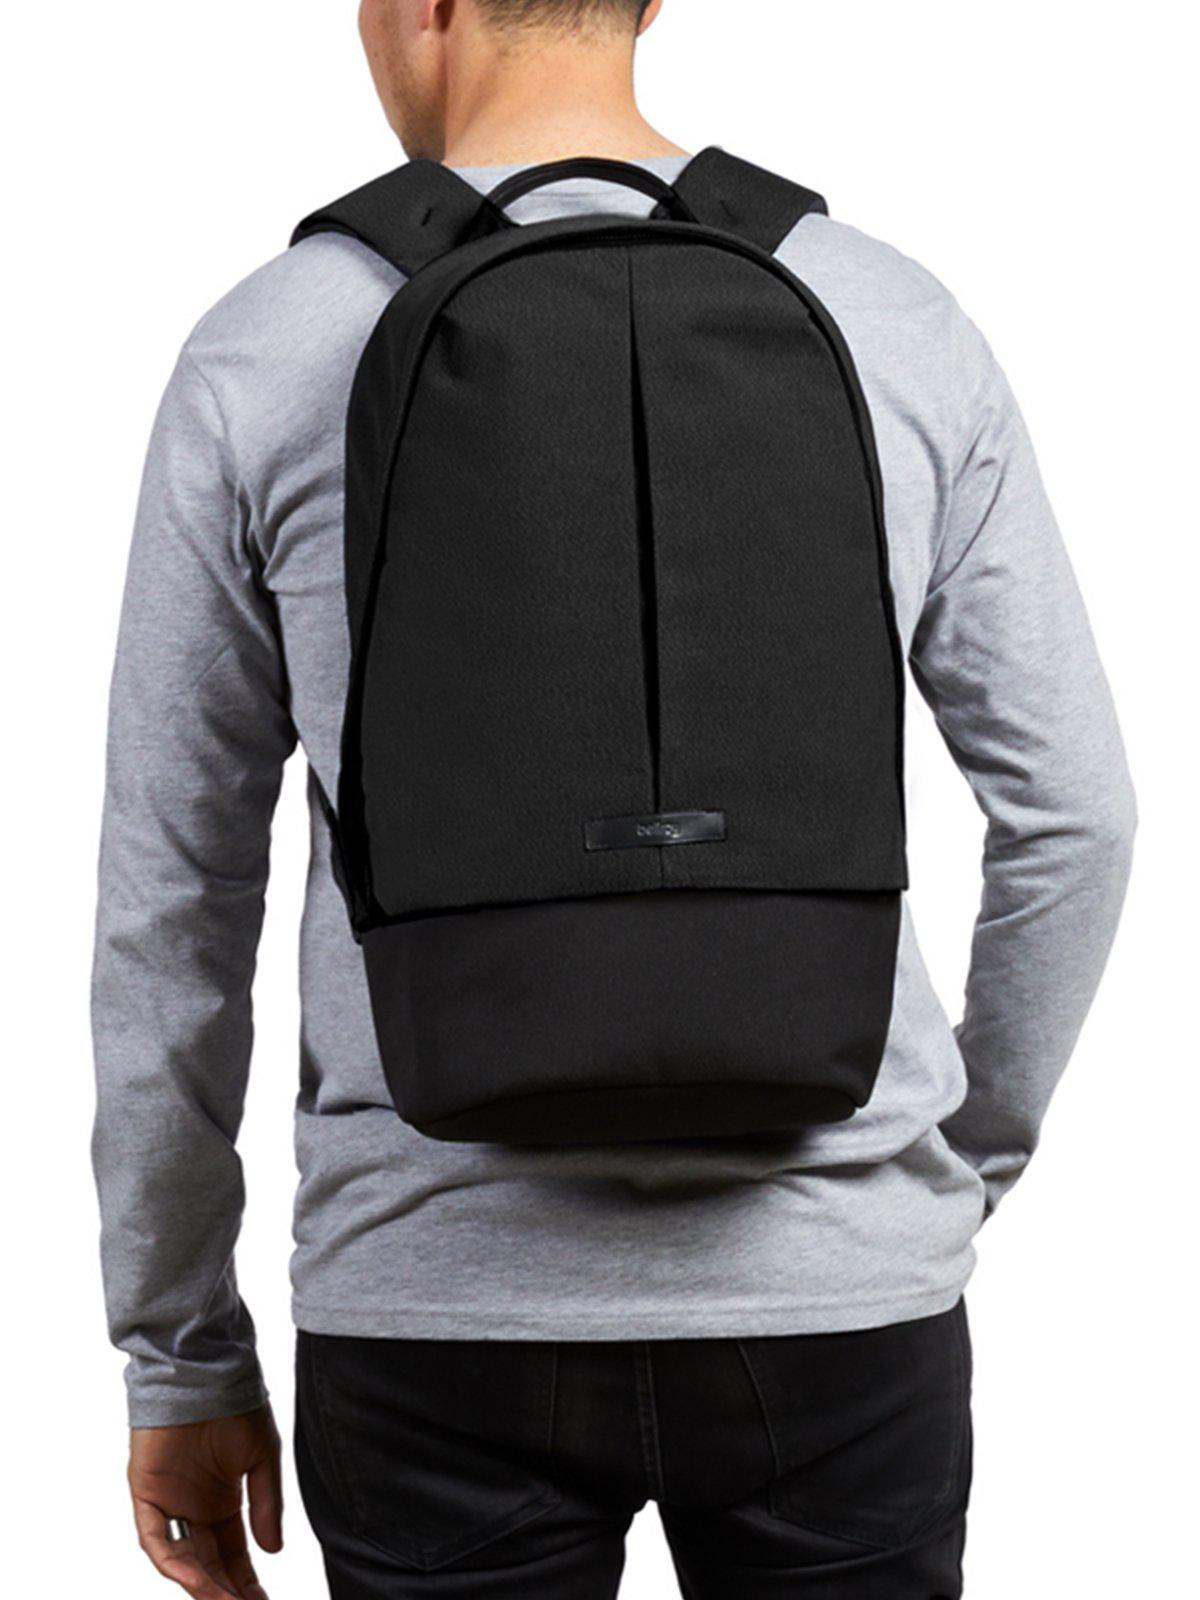 Bellroy Classic Backpack Plus Black - MORE by Morello Indonesia